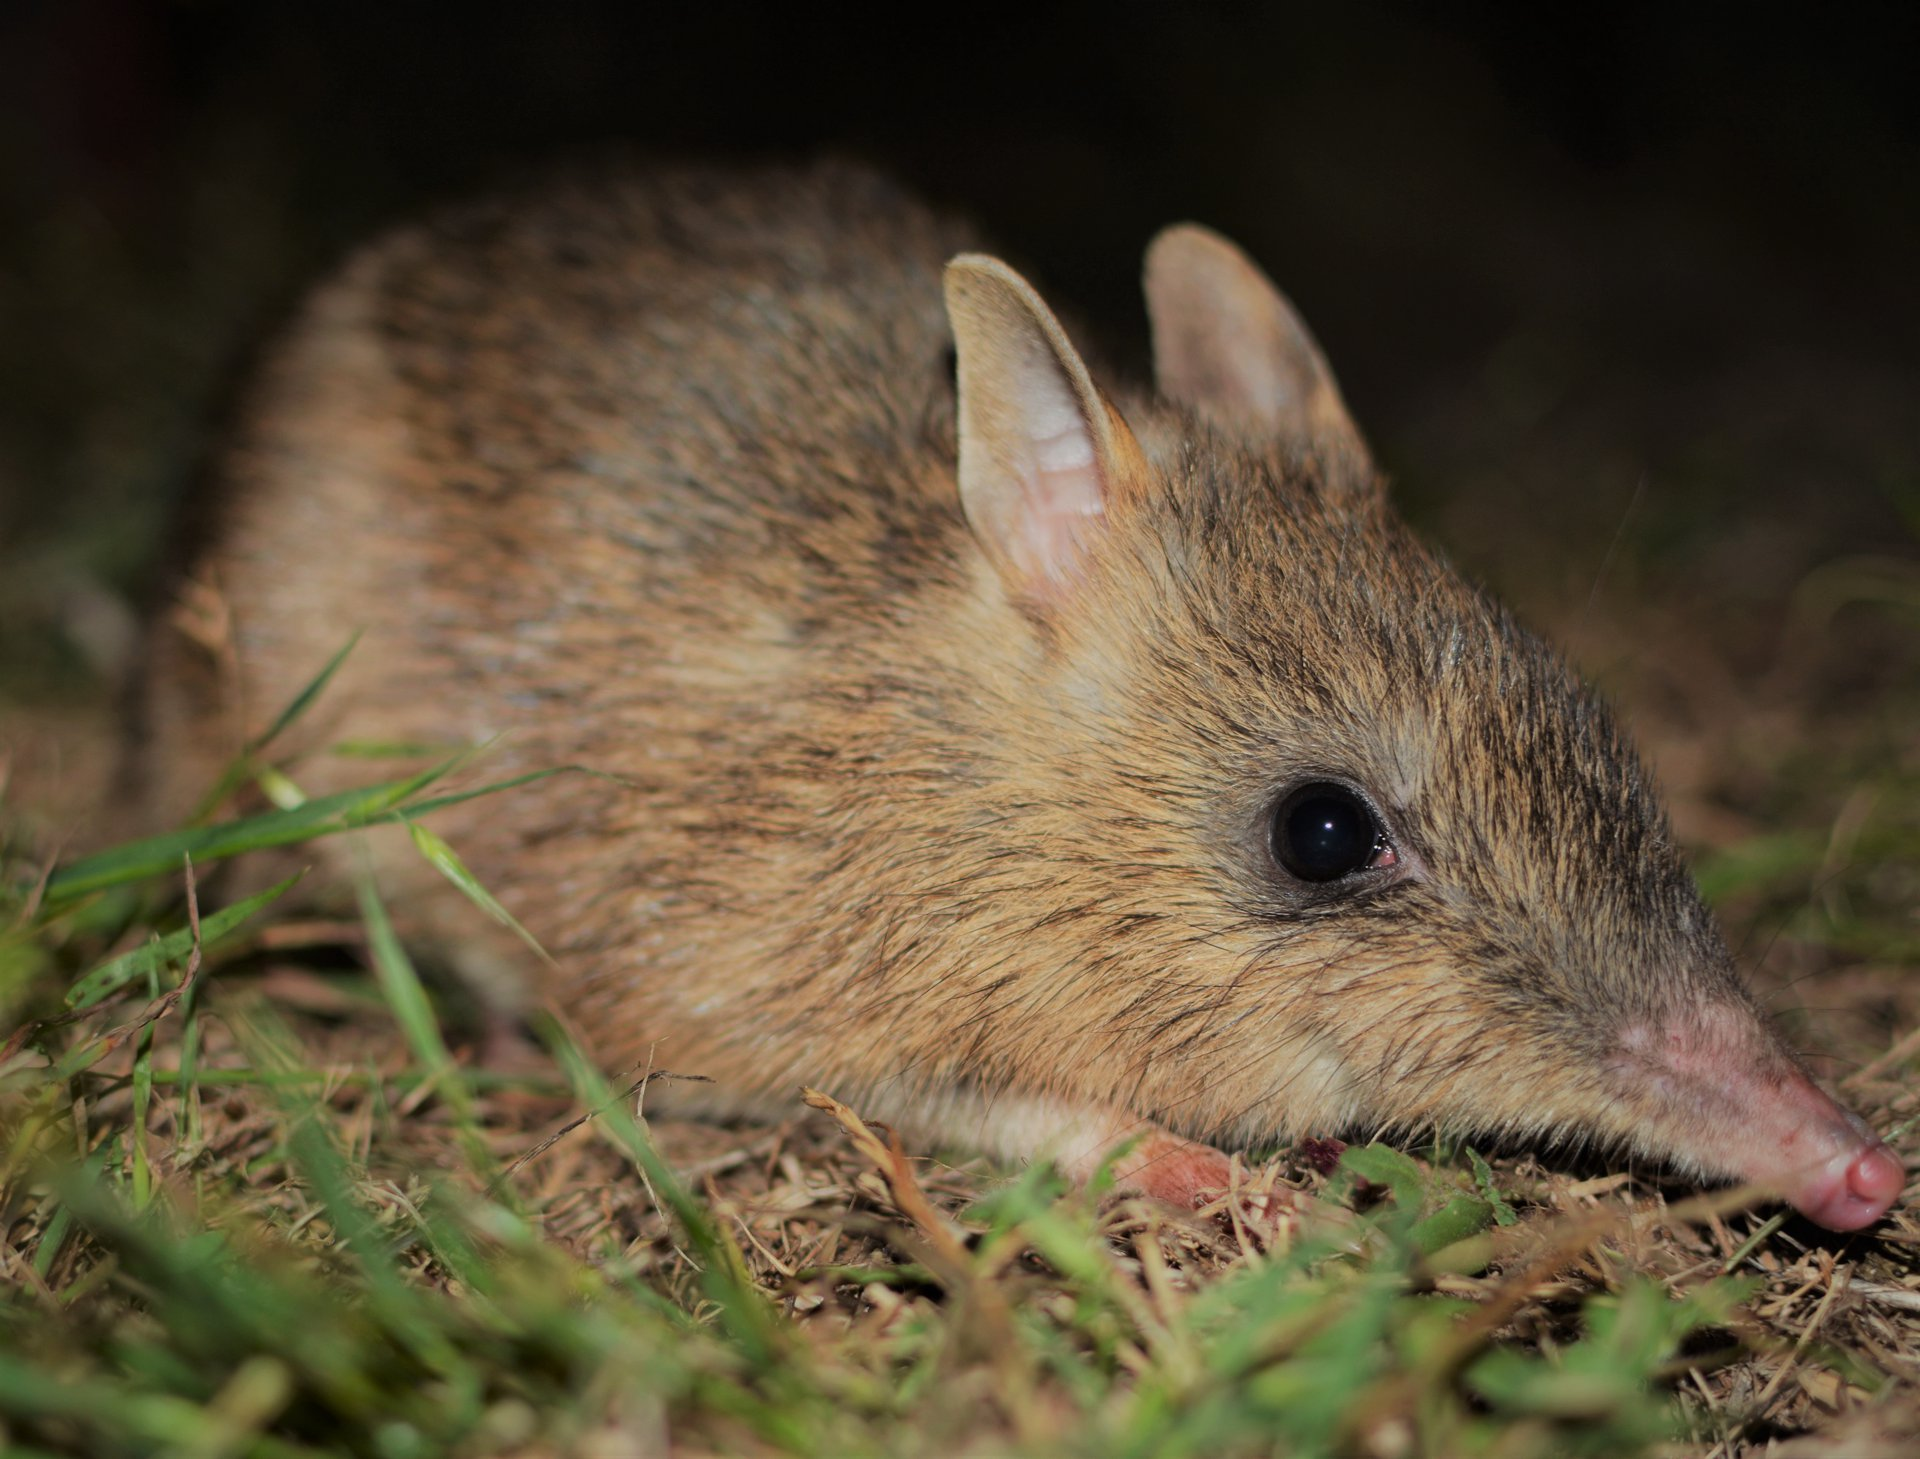 Back from the brink: crowdfunding for the genetic rescue of Eastern Barred Bandicoots